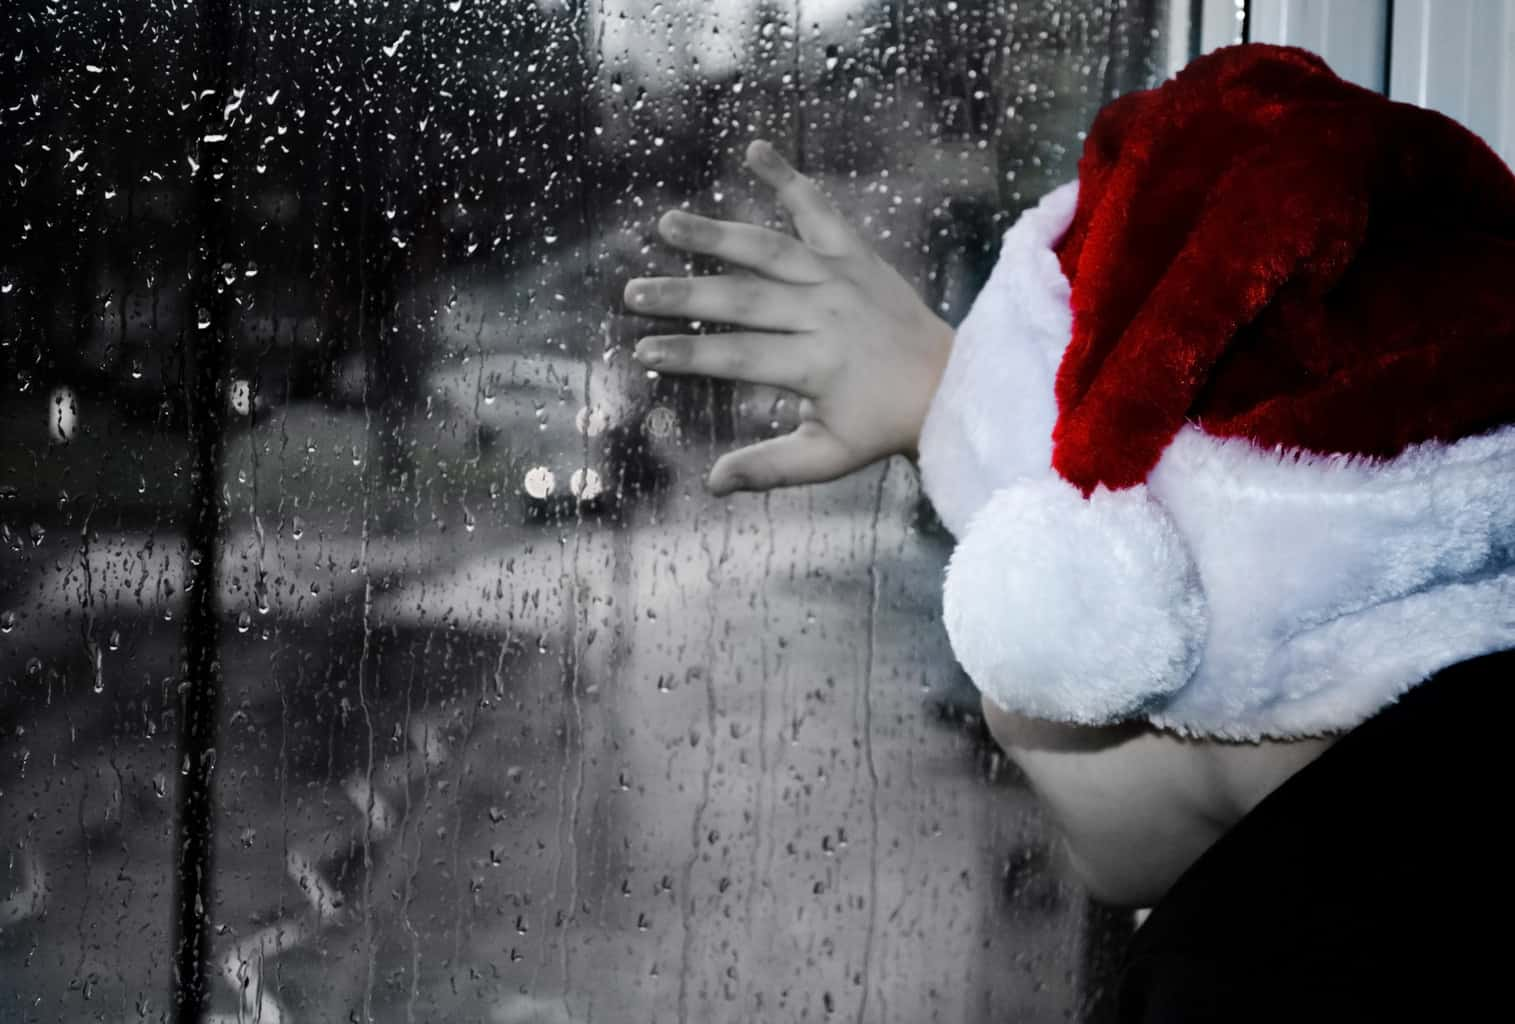 Person looking out rainy window while wearing Santa hat - Poems by Mike Larcombe